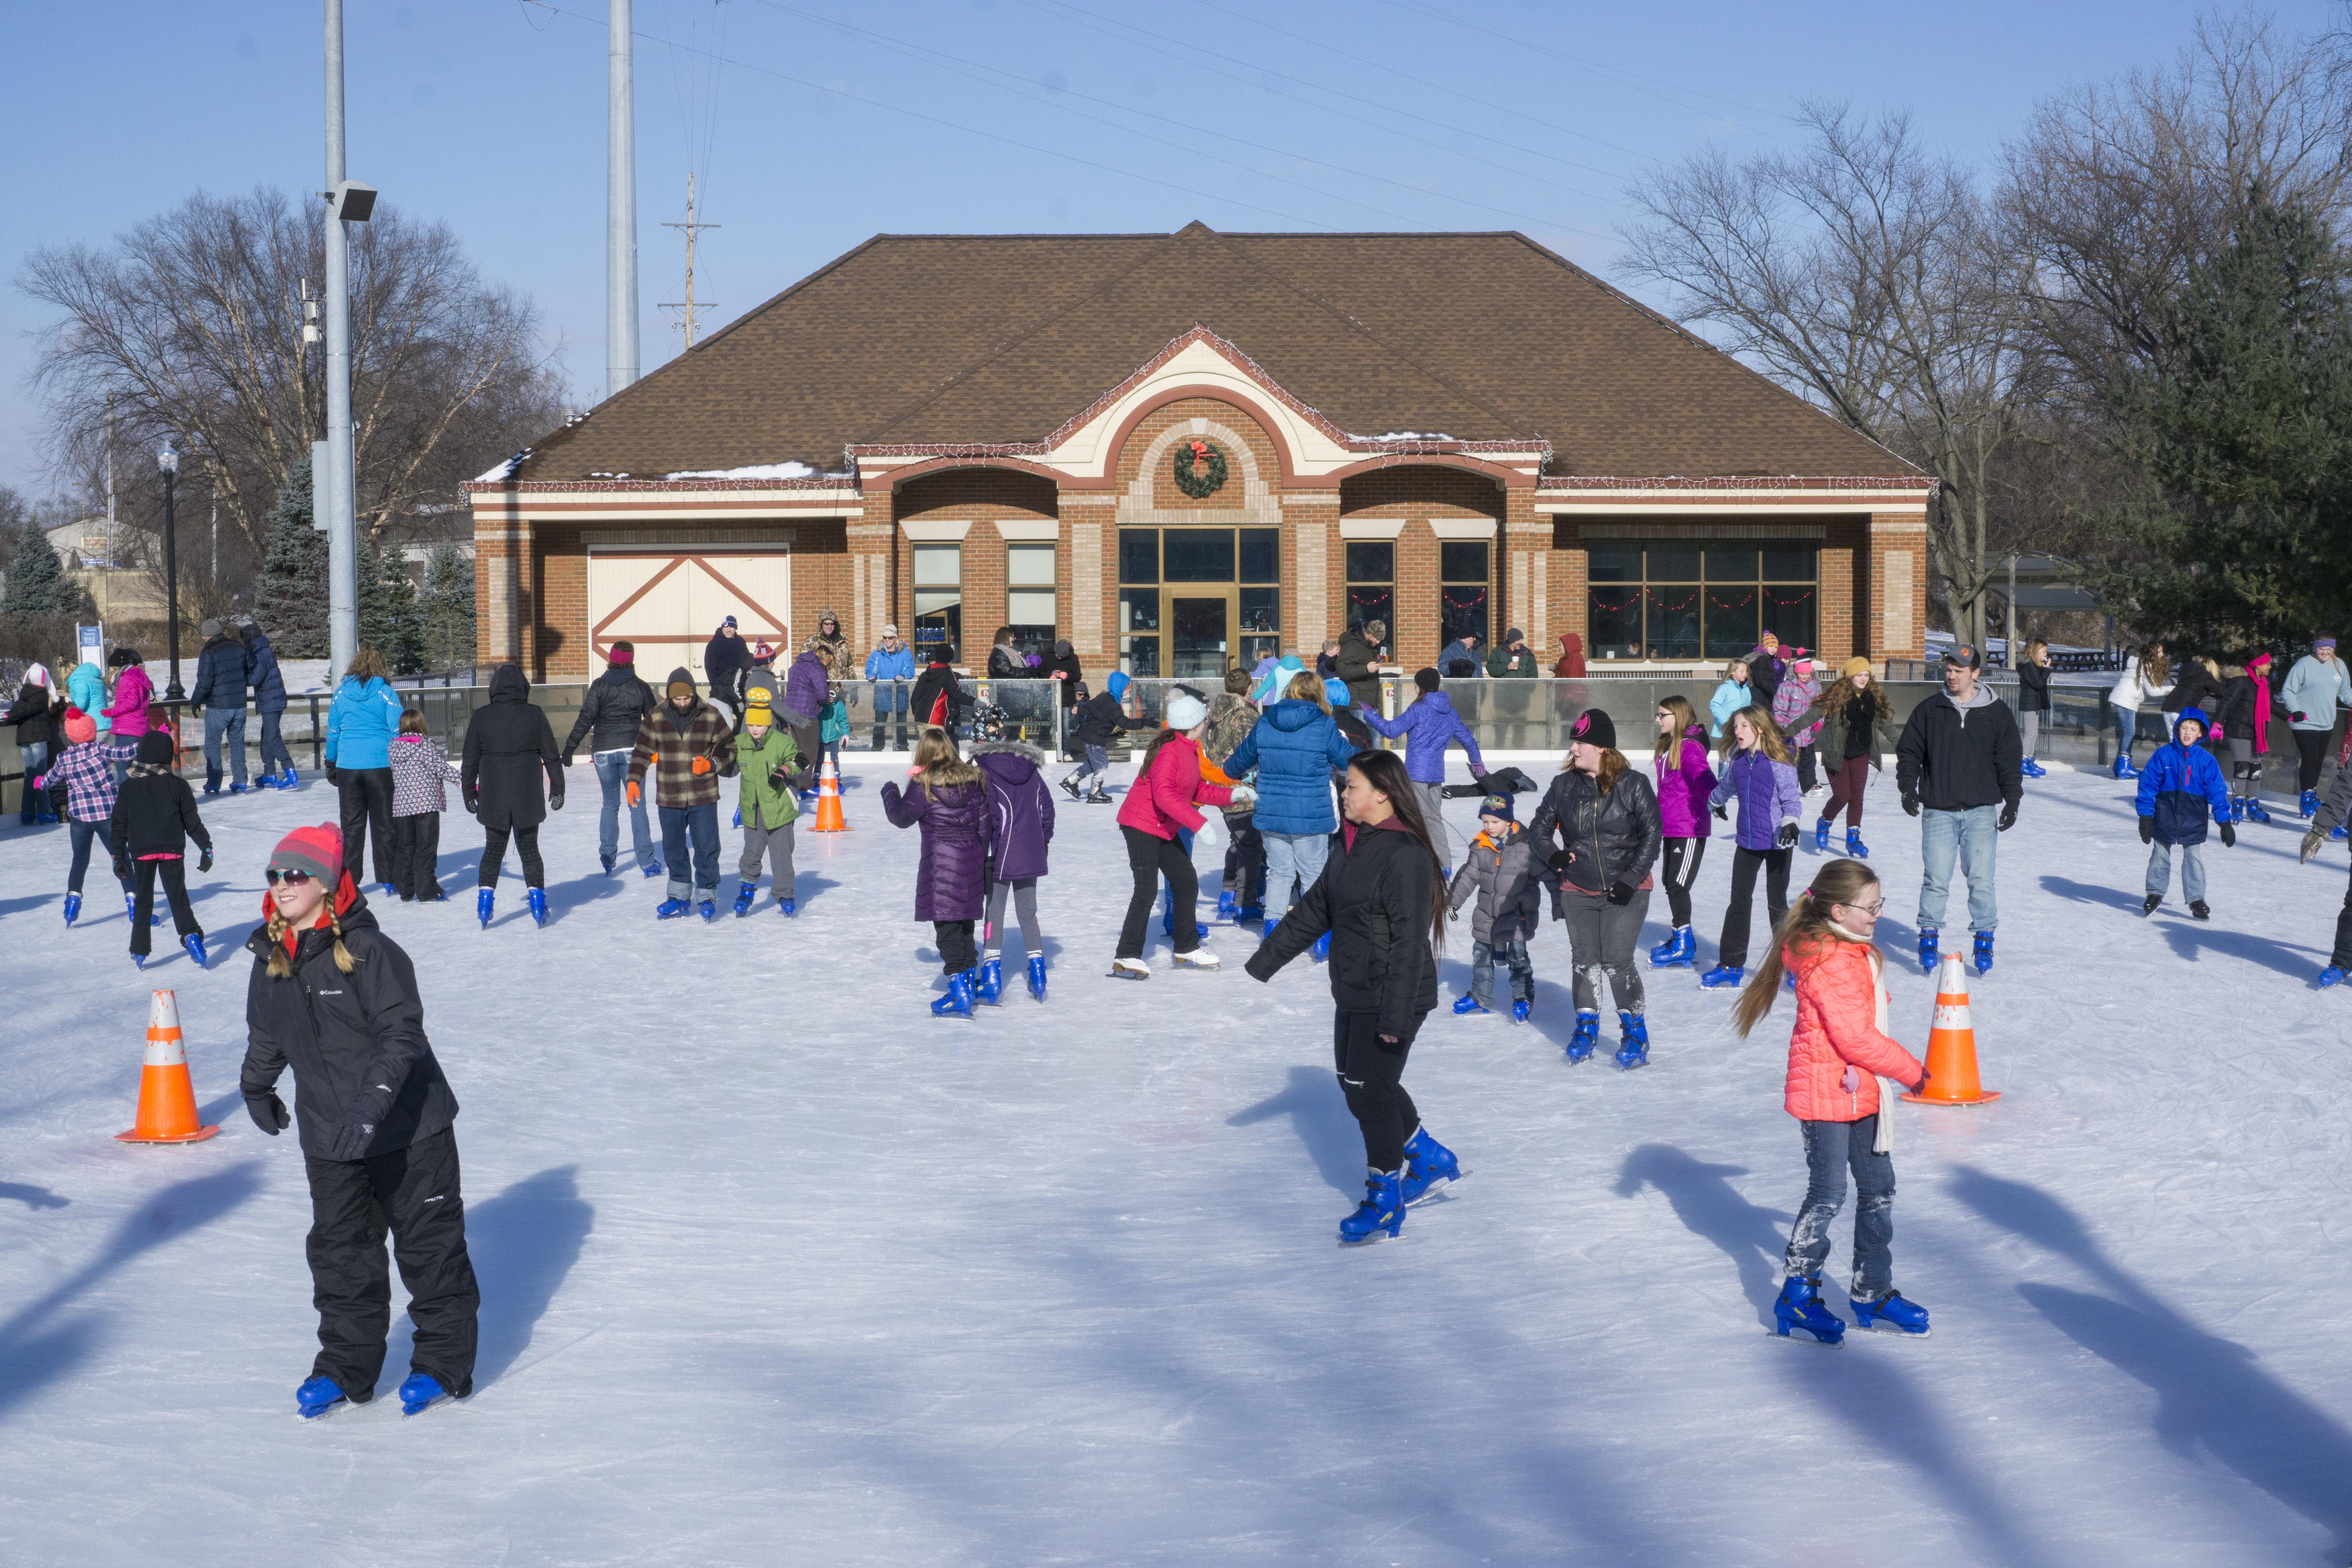 Could you ice skate in a swim suit? These skaters have the right of it wearing full outdoor winter gear!